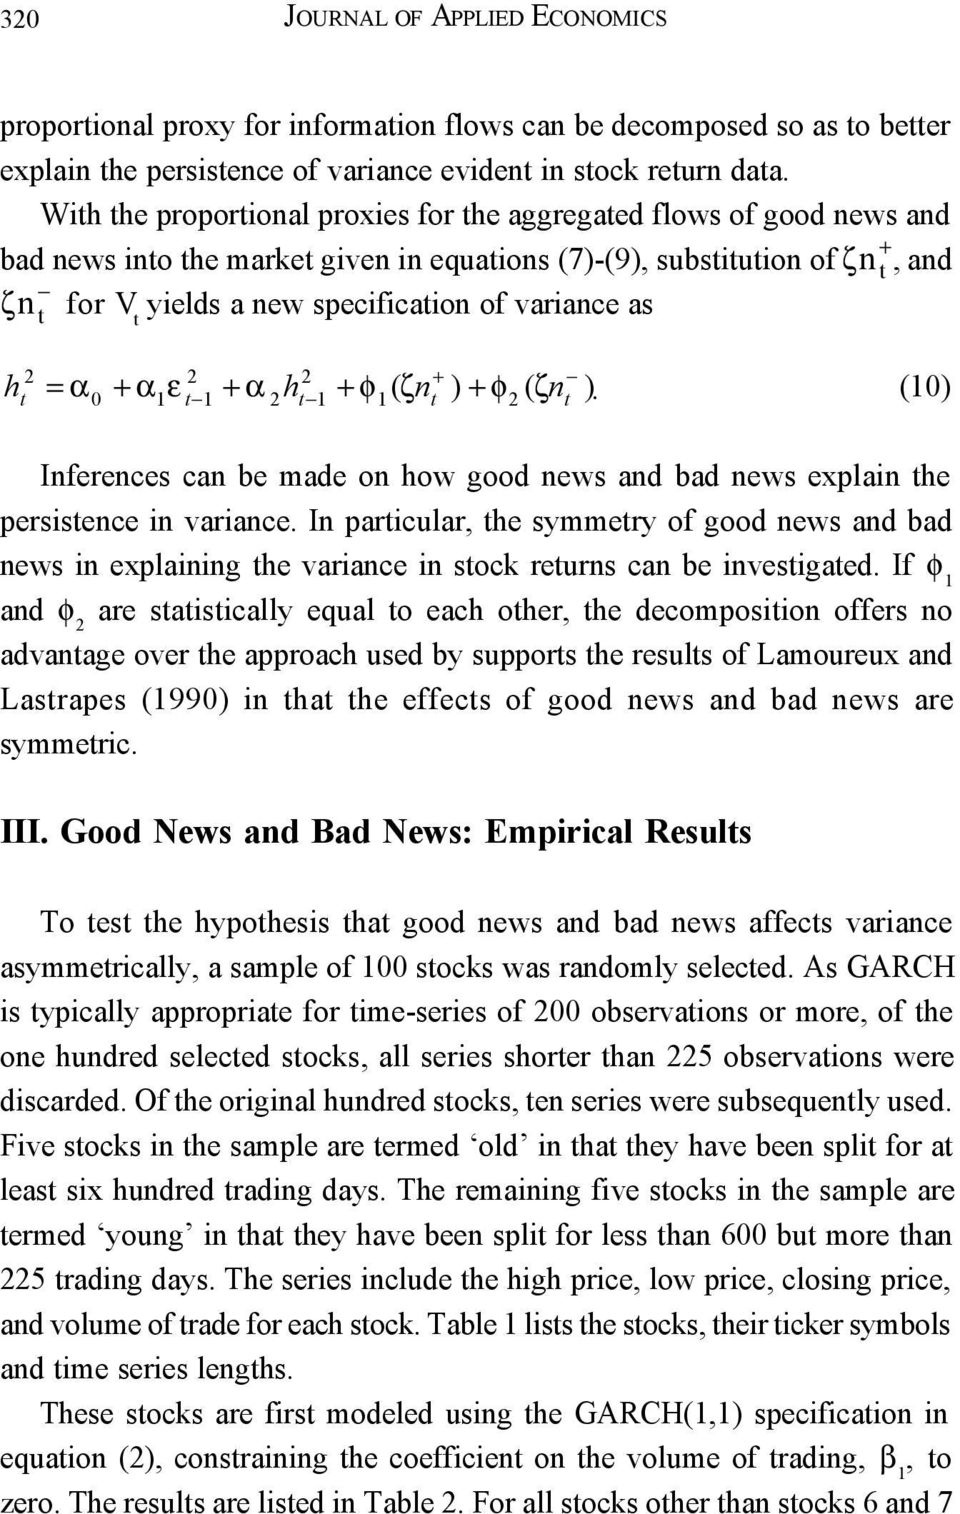 1 ( = α α ε α h φ ζn ) φ ( ζn ). (10) Inferences can be made on how good news and bad news explain he persisence in variance.